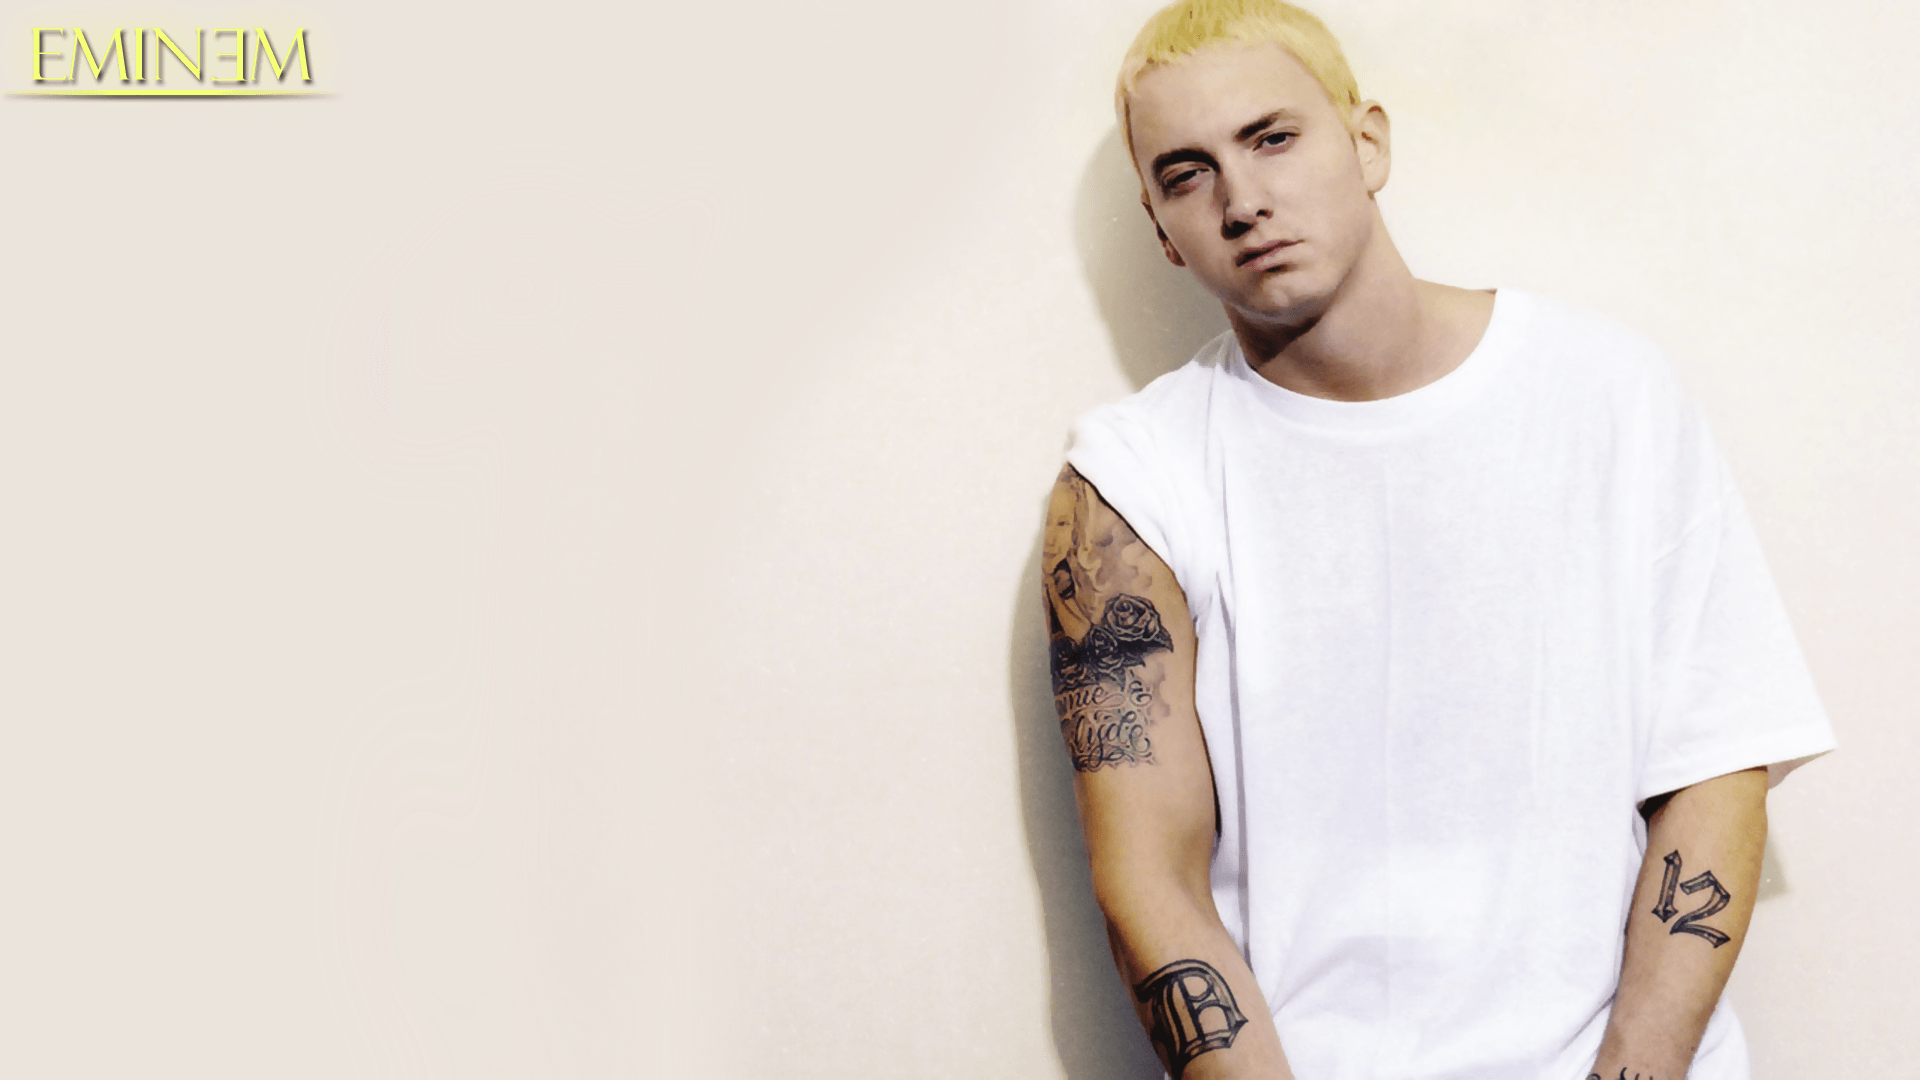 Eminem WallPaper FullHDxc by Pit3-r on DeviantArt